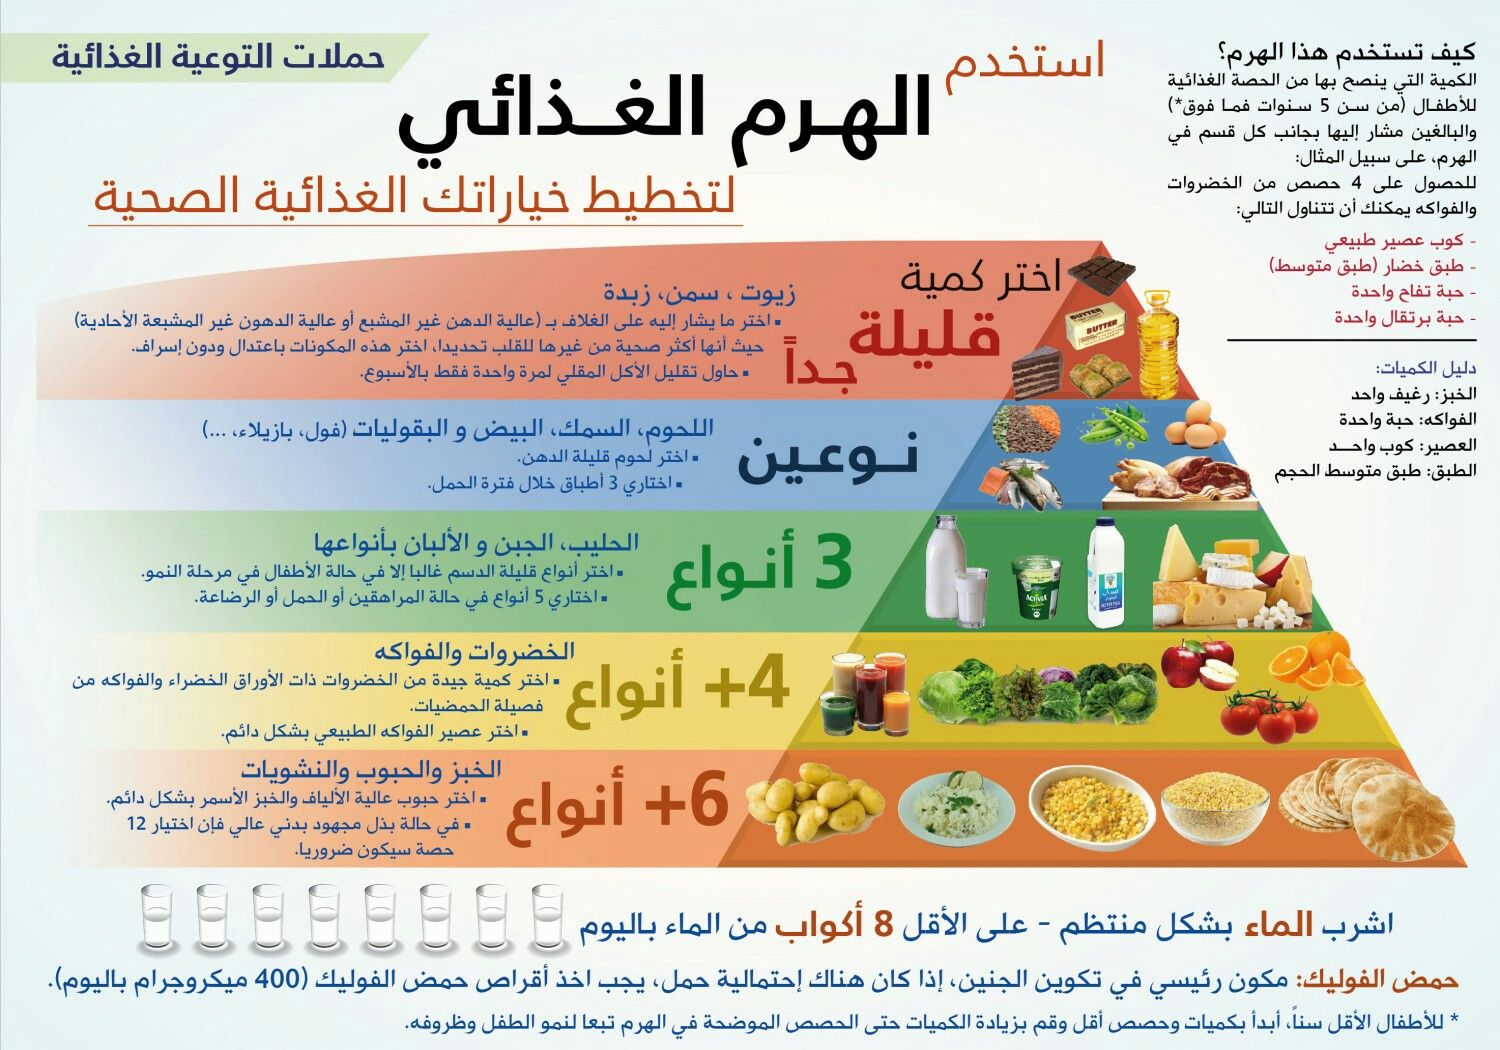 Pin By G S On كل يوم معلومه طبيه Health And Nutrition Food Pyramid Health